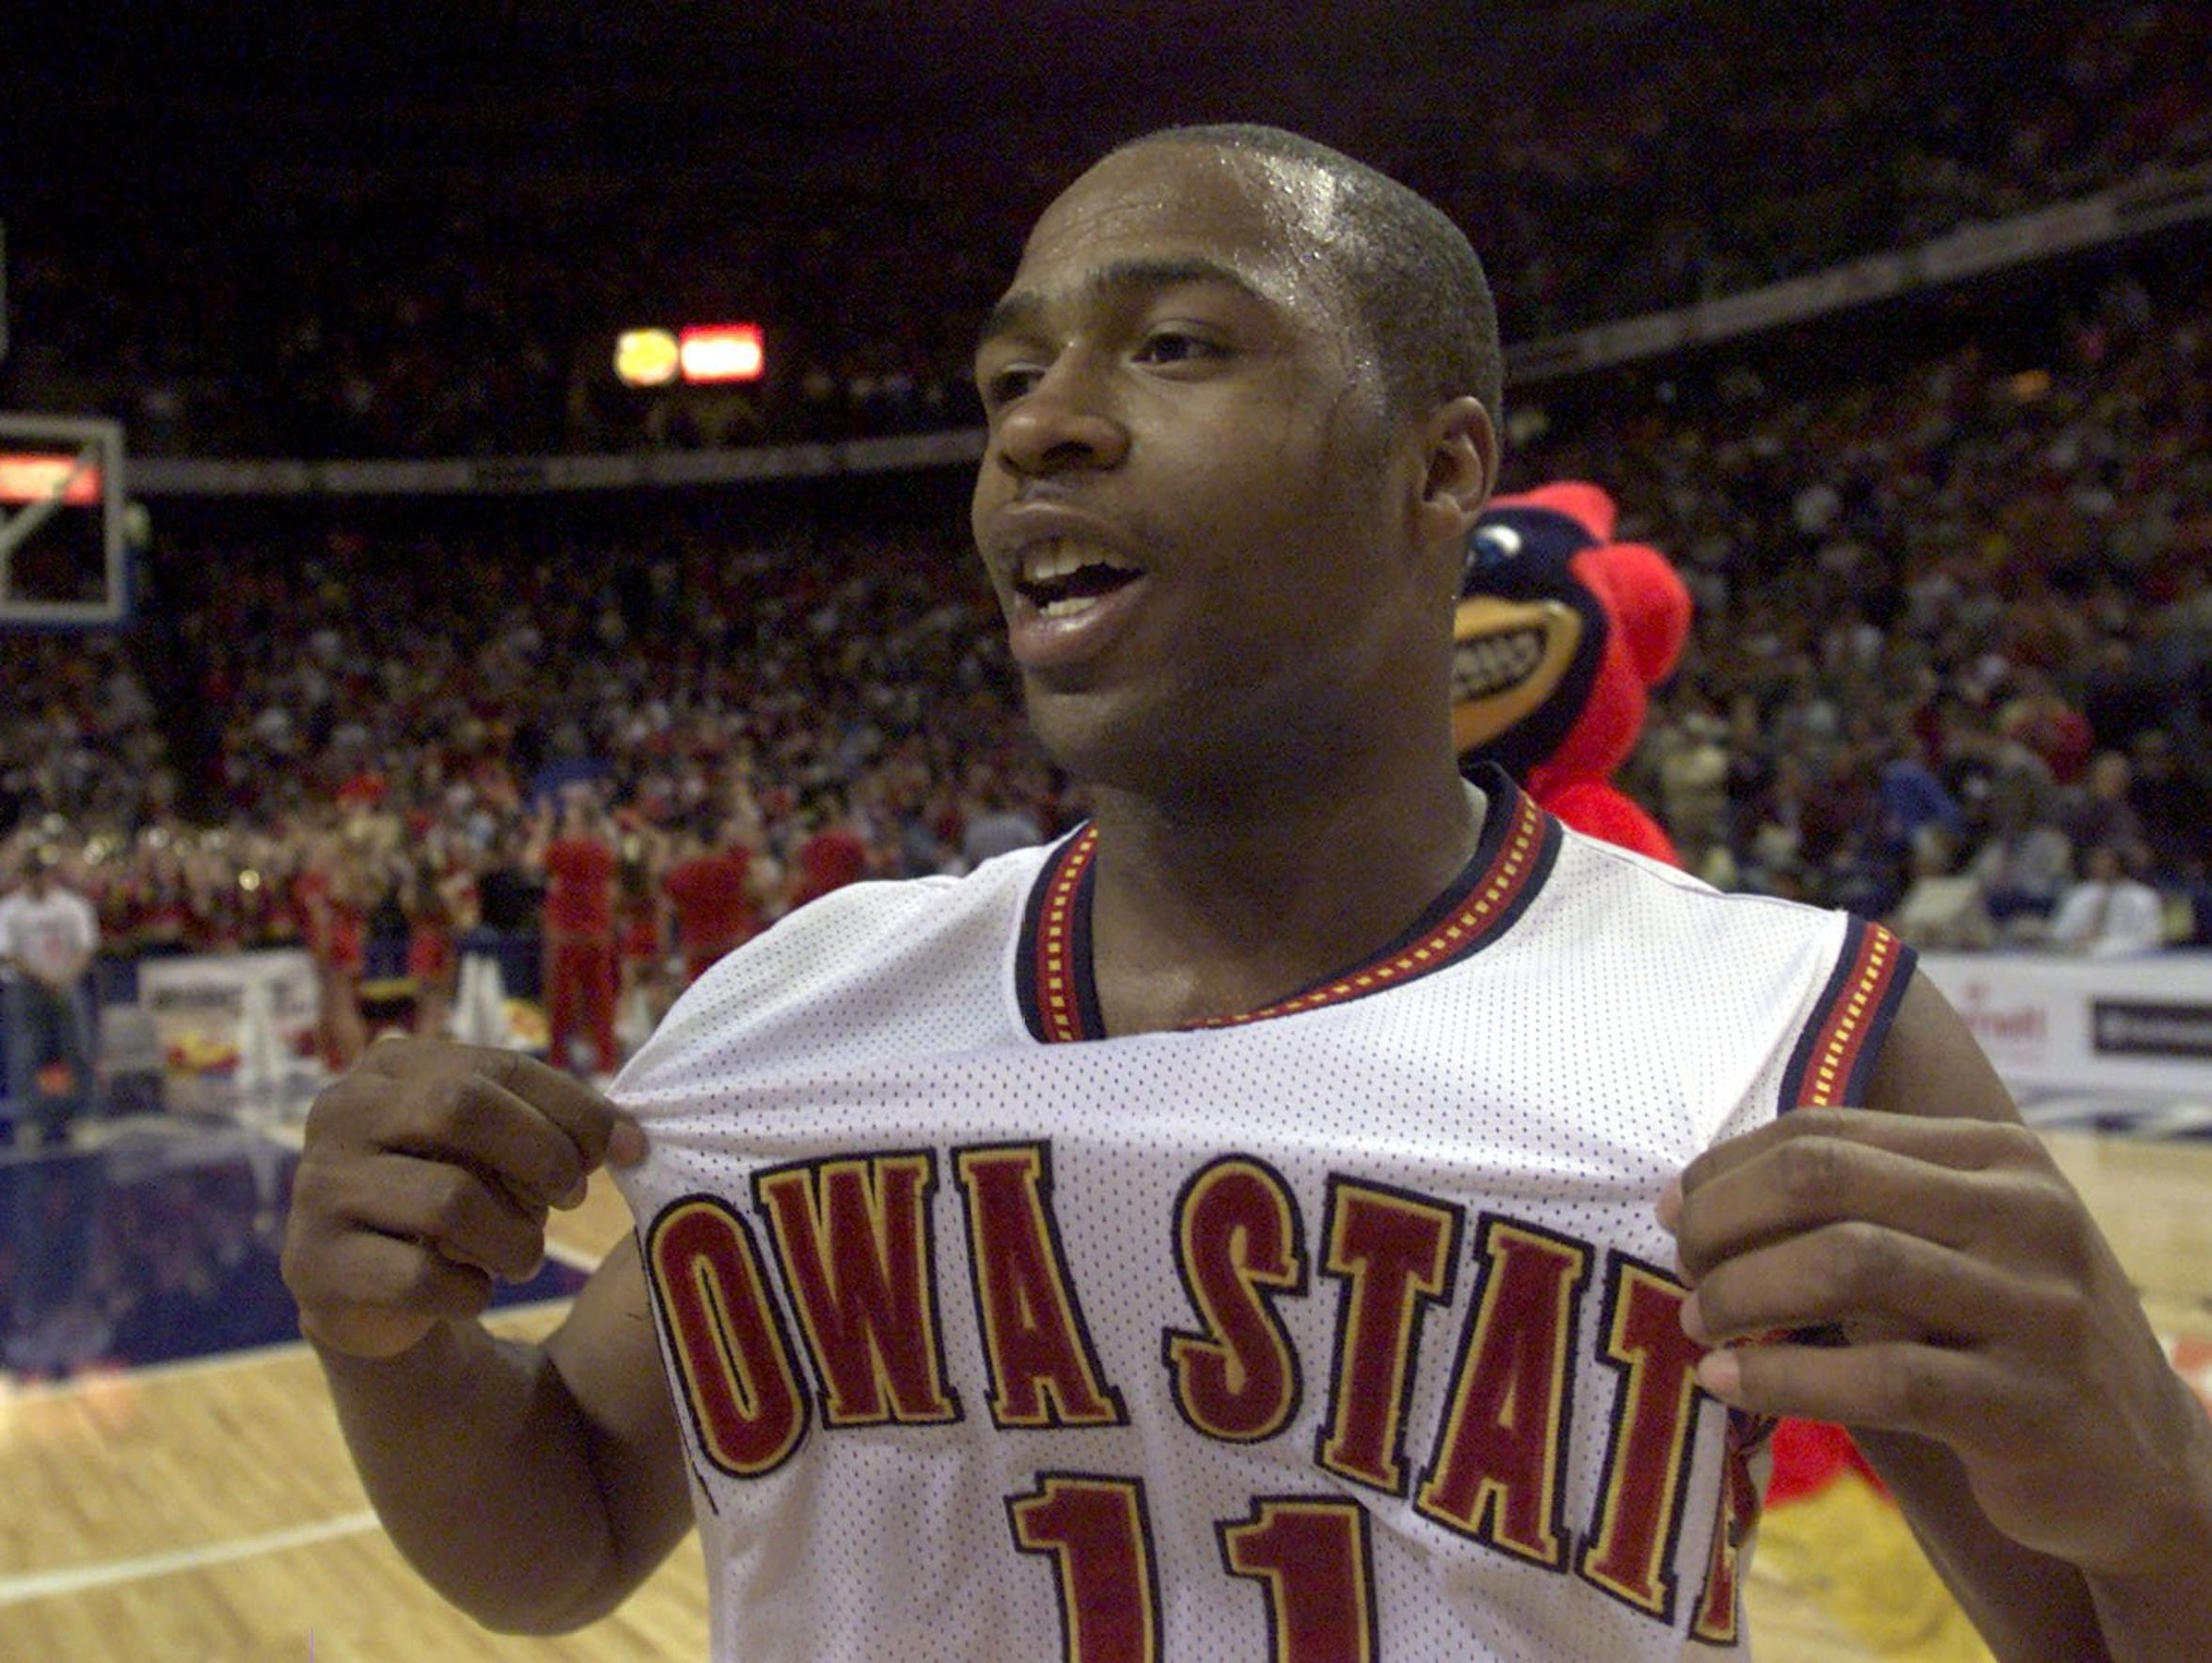 Point guard Jamaal Tinsley was Iowa State's fearless